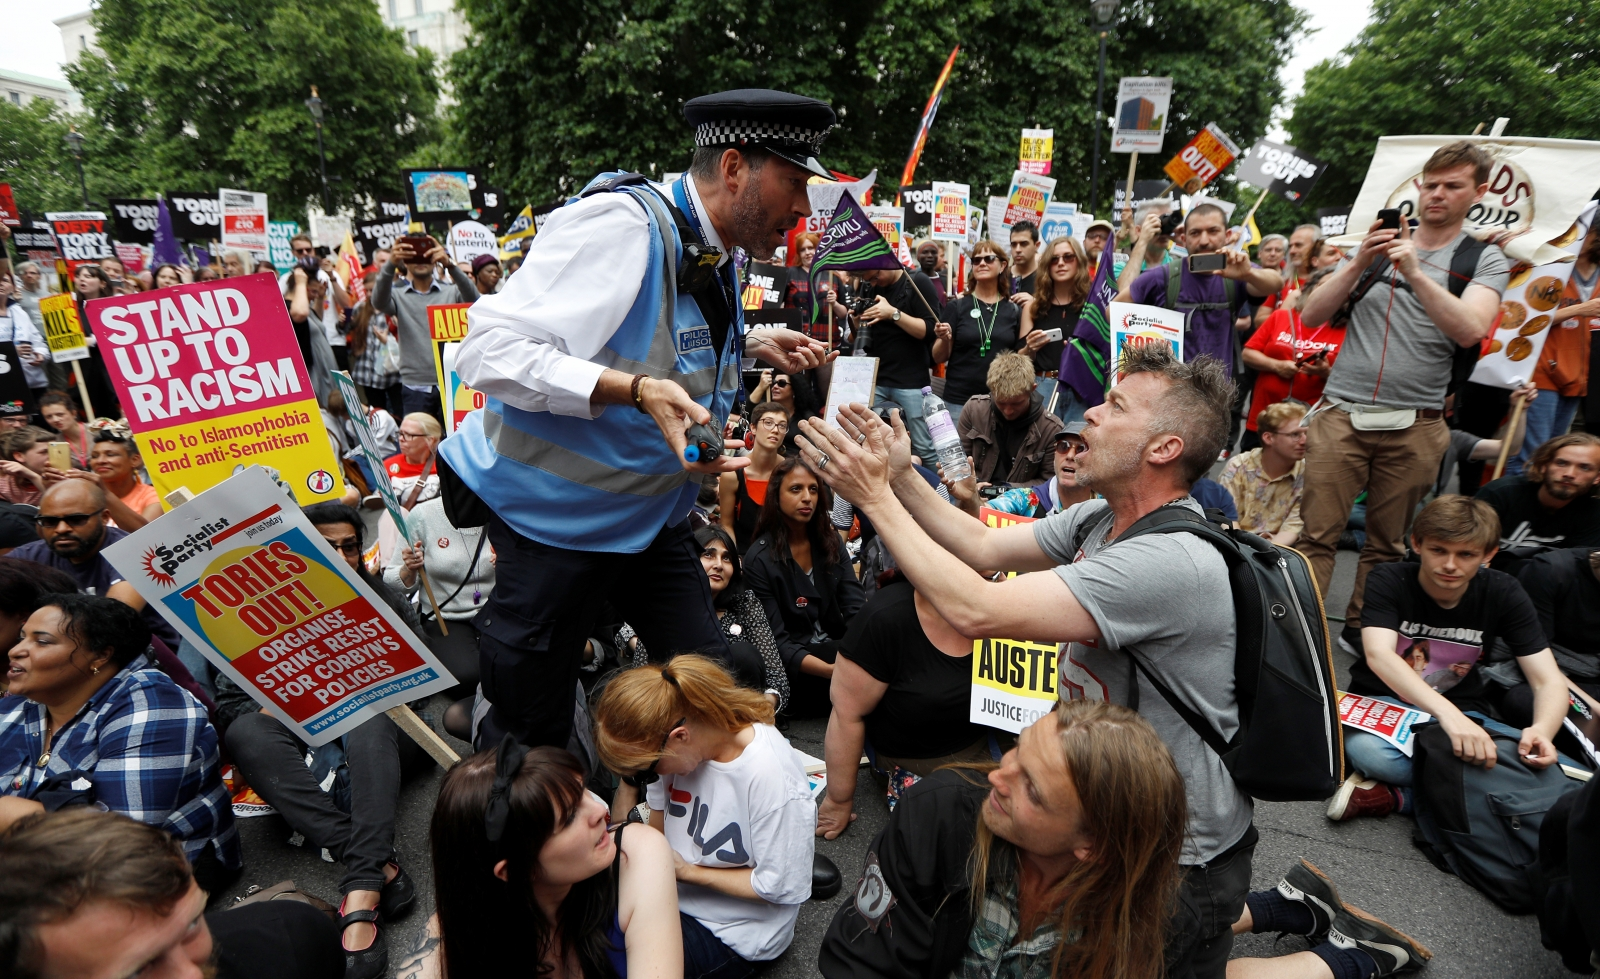 Anti-austerity rally London protests